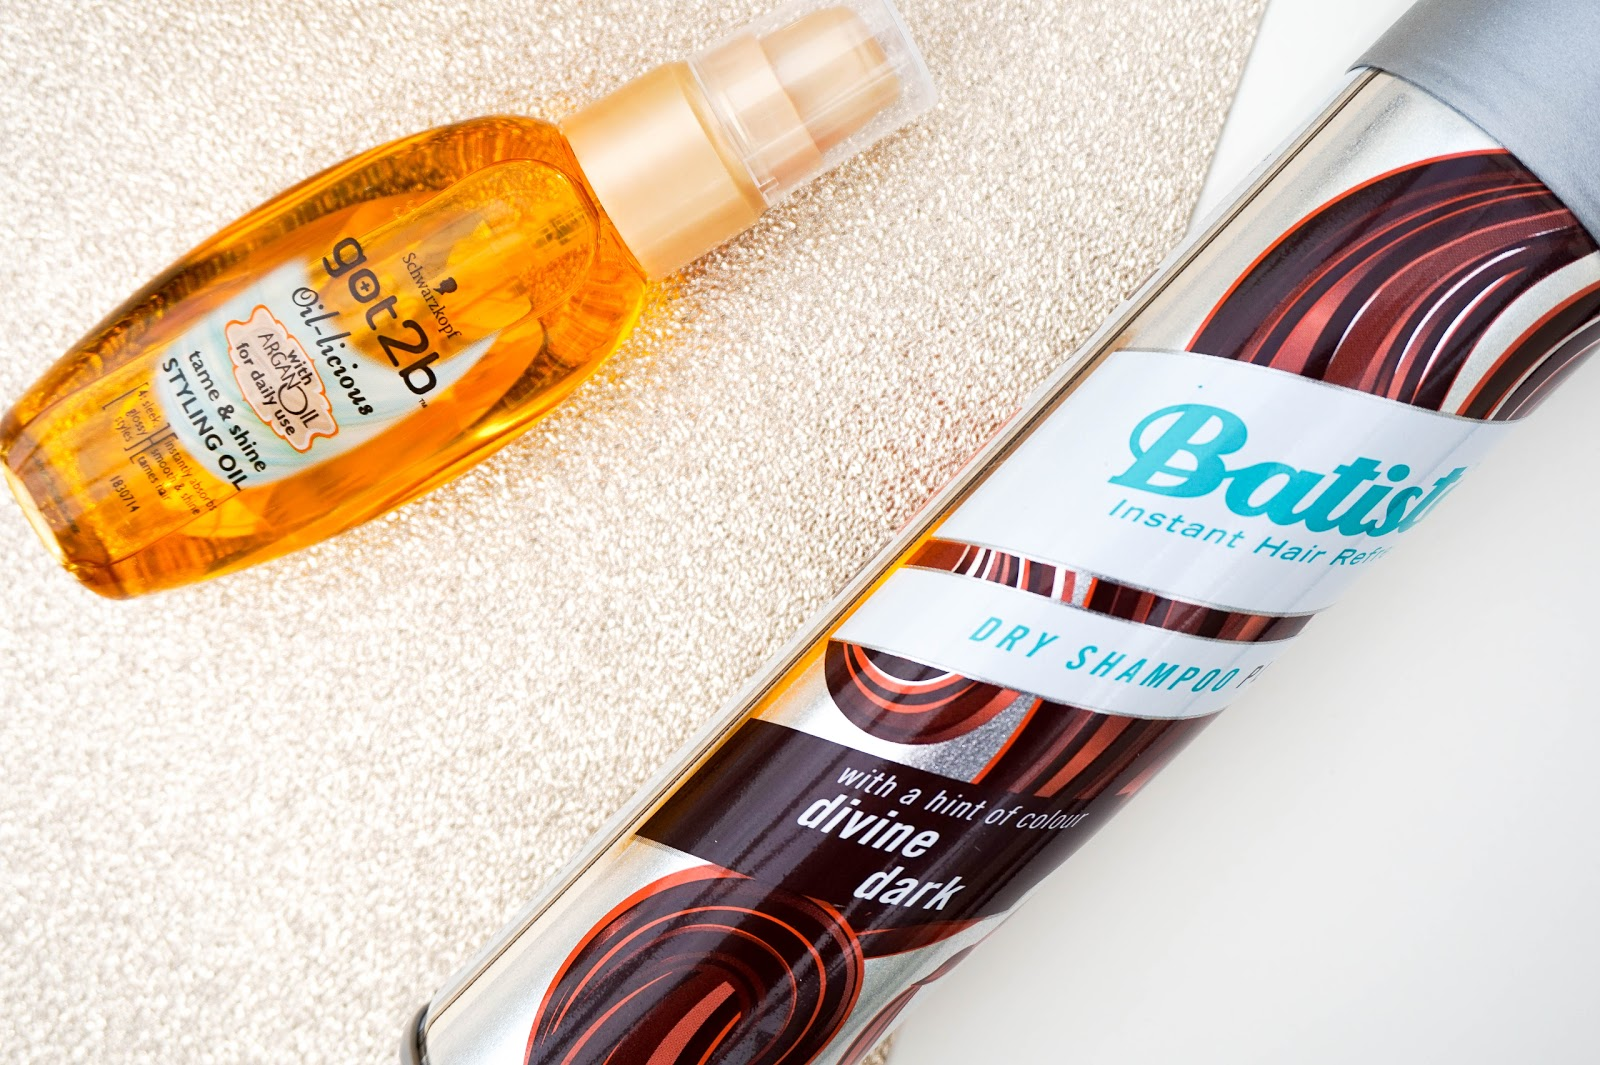 My Simple Hair Routine feat. Ogario London, Schwarzkopf, Batiste, Tangleteezer, GHD